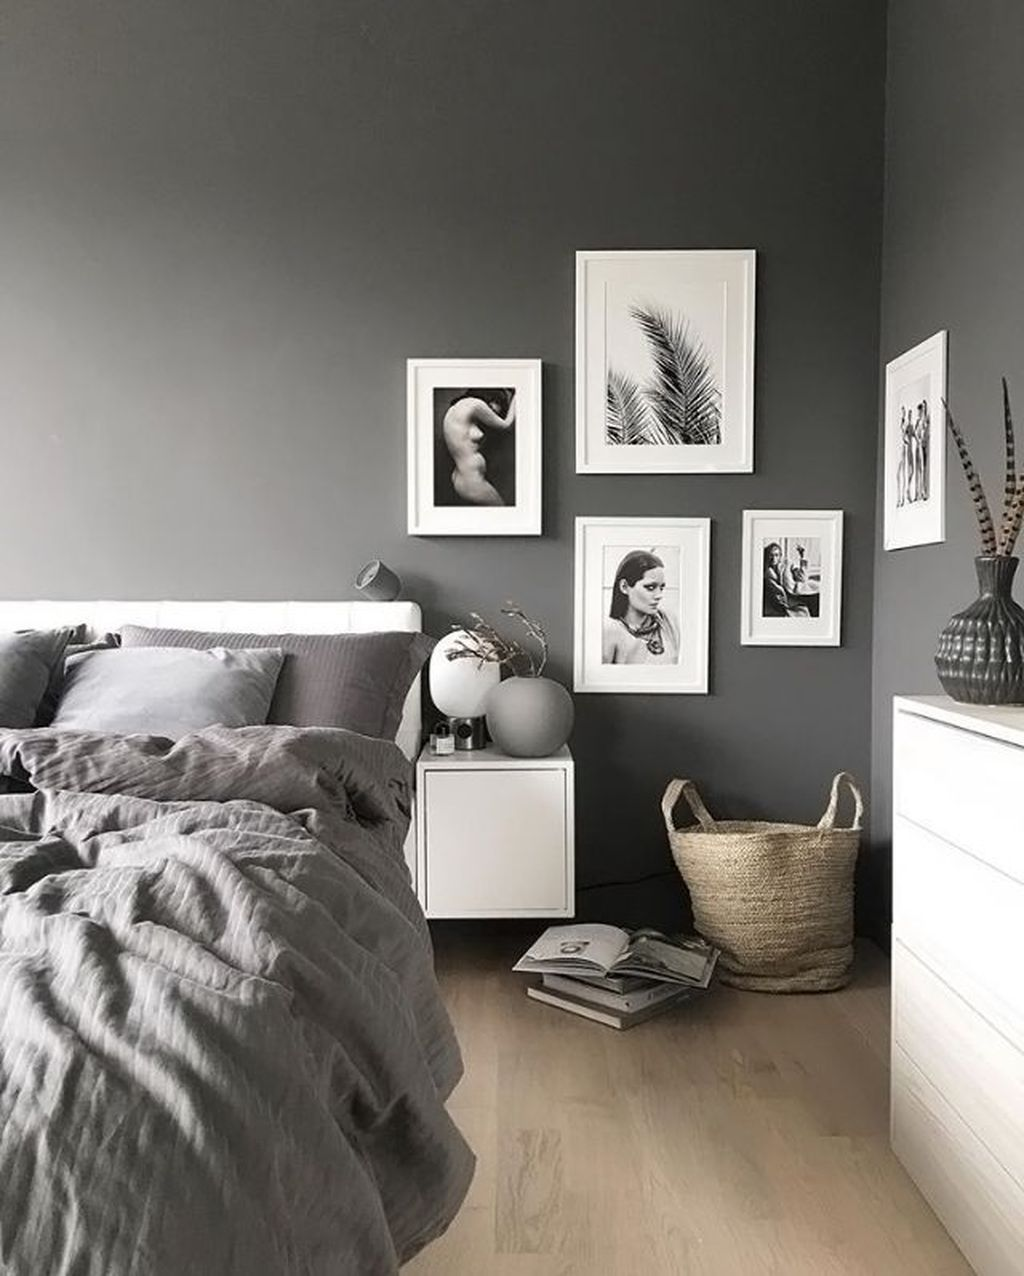 20 Cool Modern And Minimalist Bedroom Design Ideas In